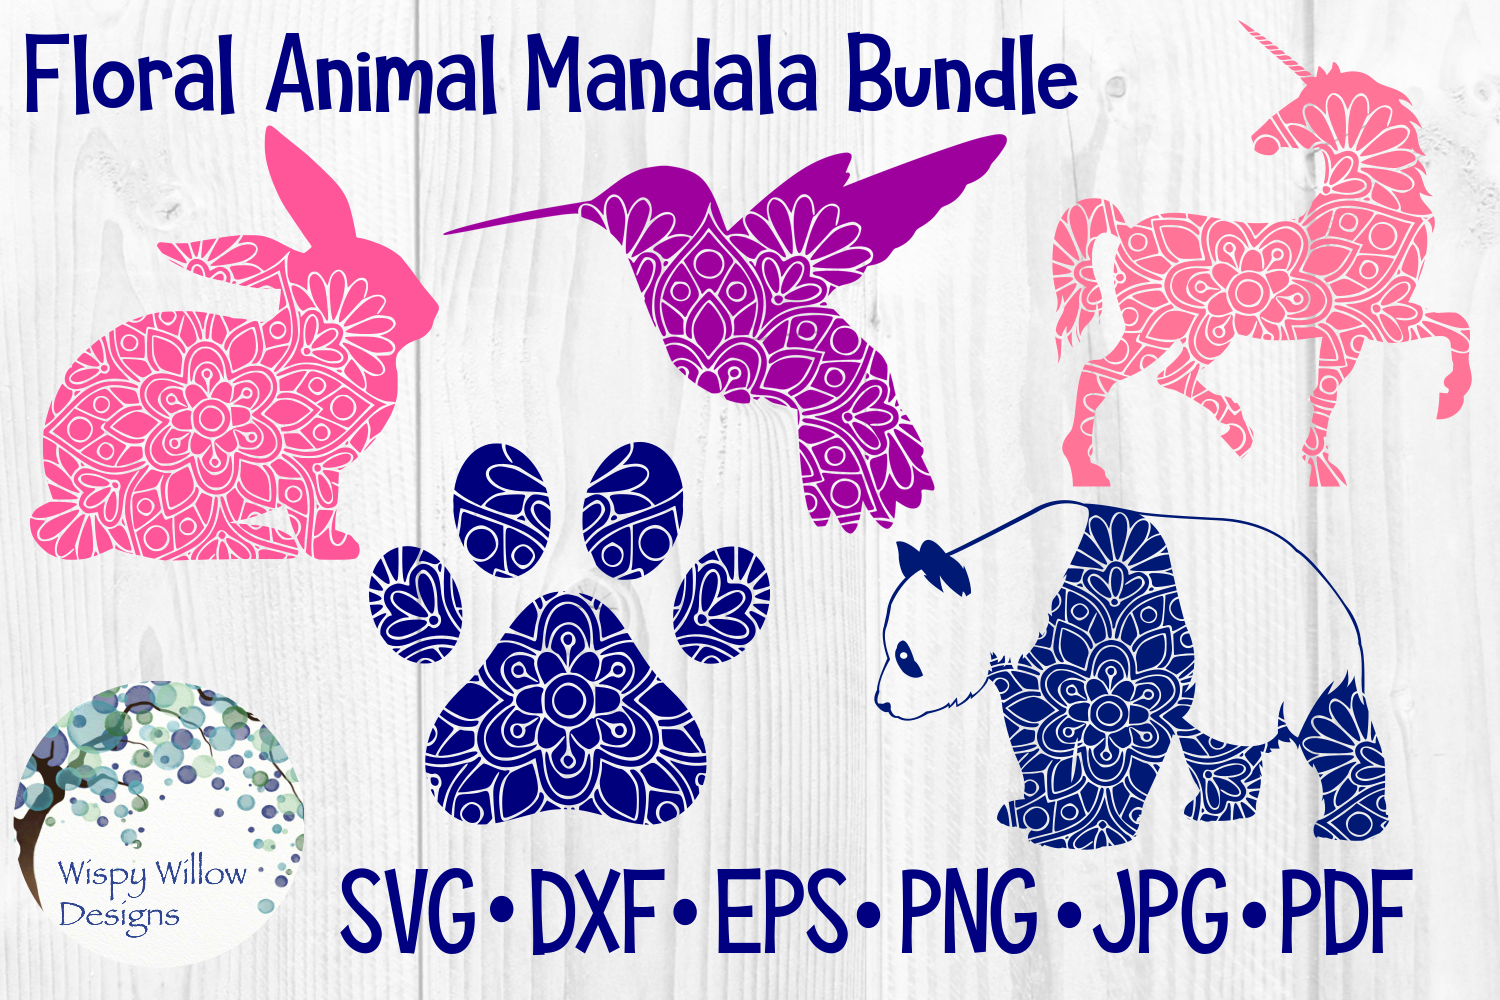 Download Free Floral Animal Mandala Bundle Rabbit Grafico Por Wispywillowdesigns Creative Fabrica for Cricut Explore, Silhouette and other cutting machines.